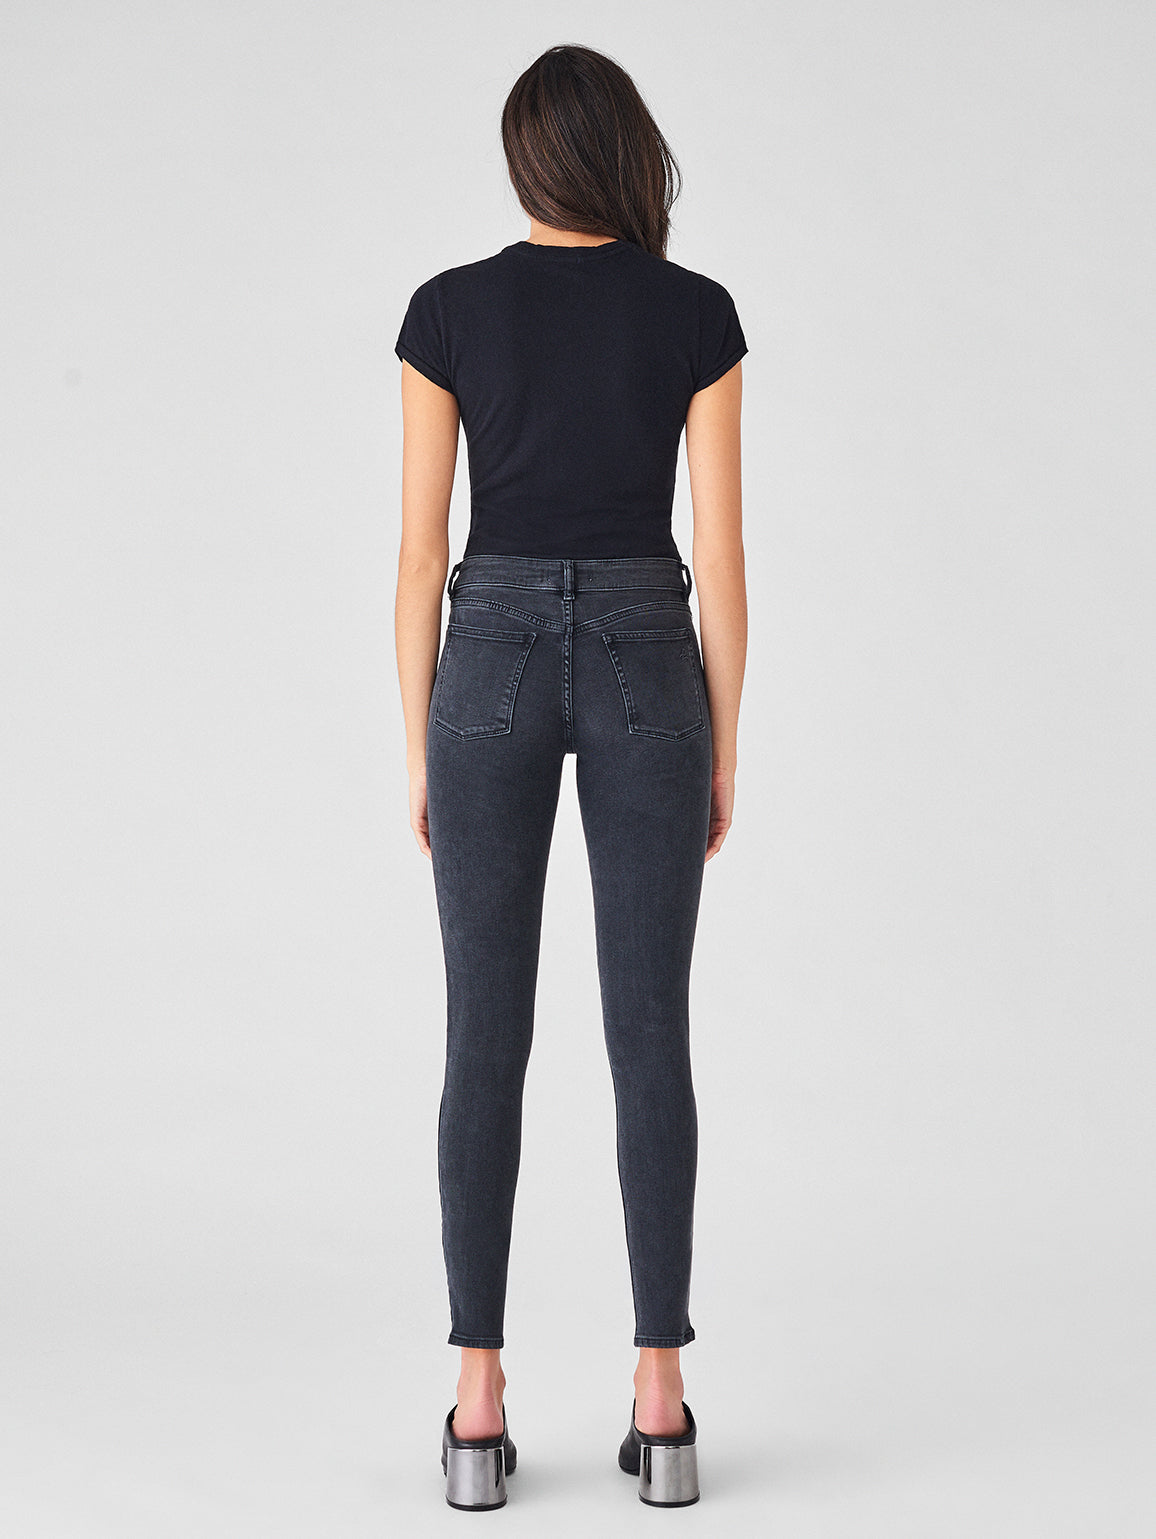 Women - Margaux Mid Rise Ankle Skinny | Morrison - DL1961